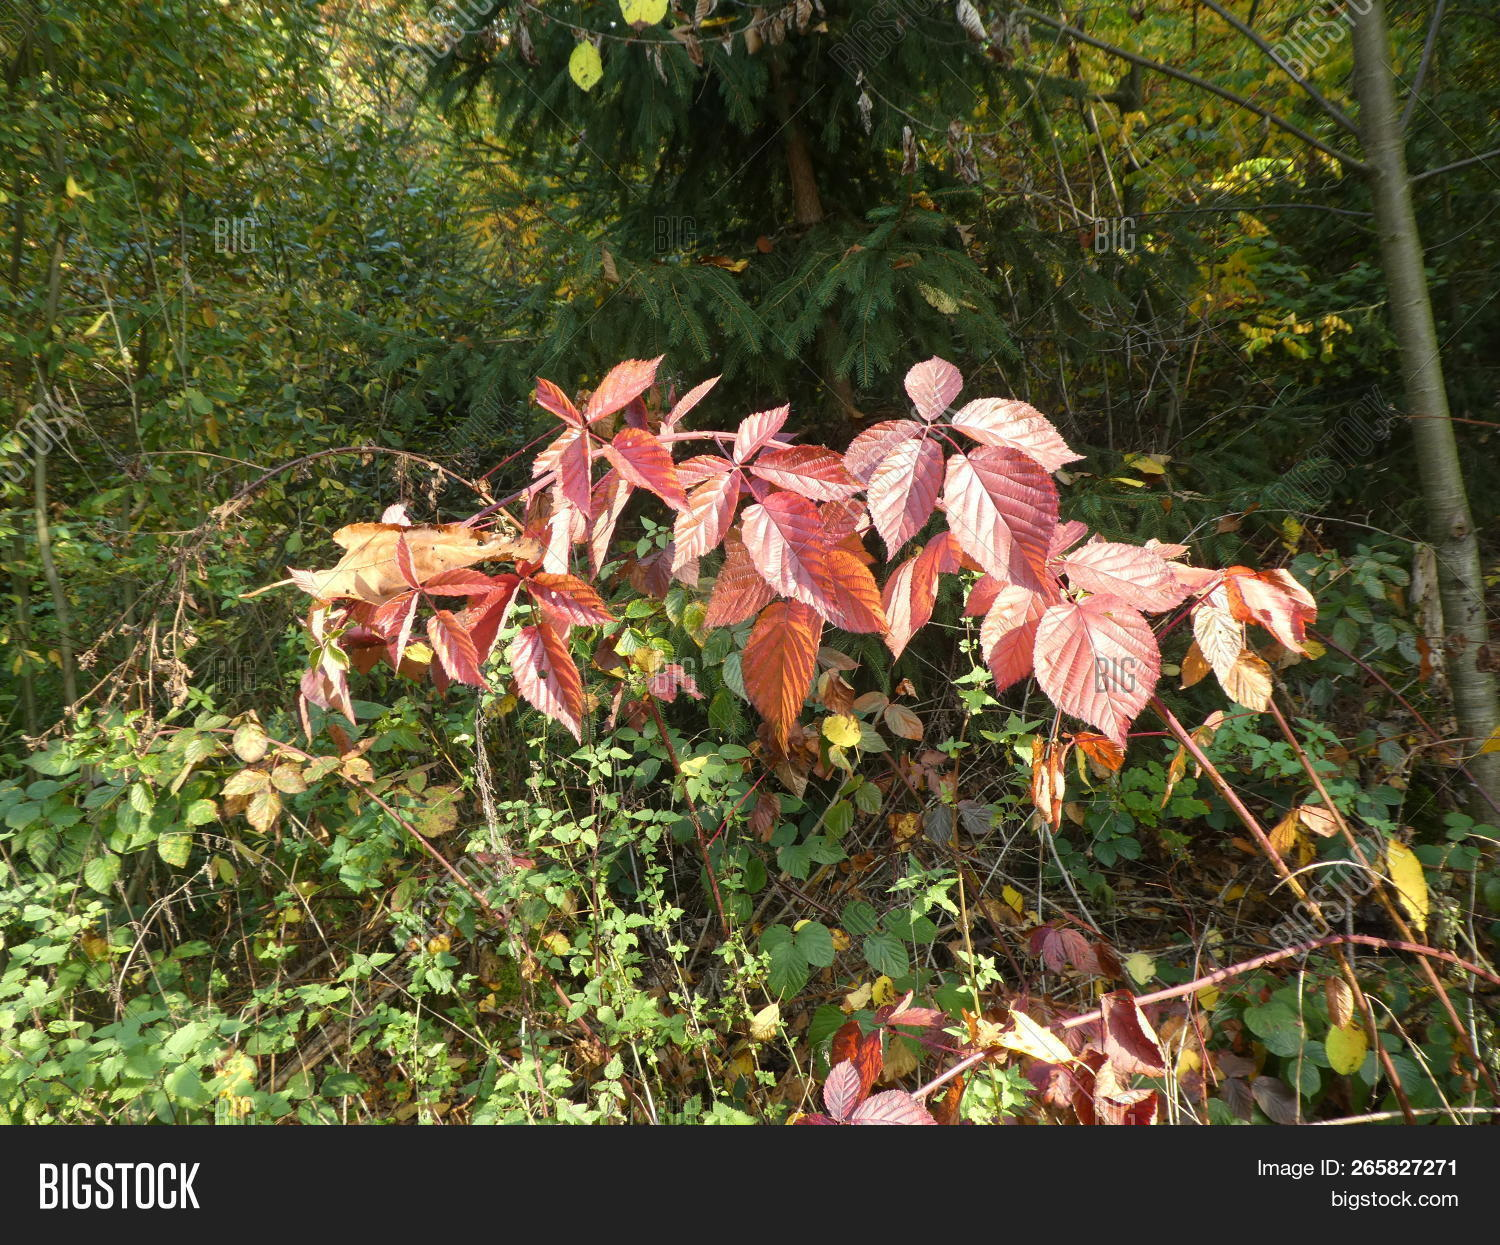 autumn,brambleberry,bush,forest,leaves,nature,red,wild